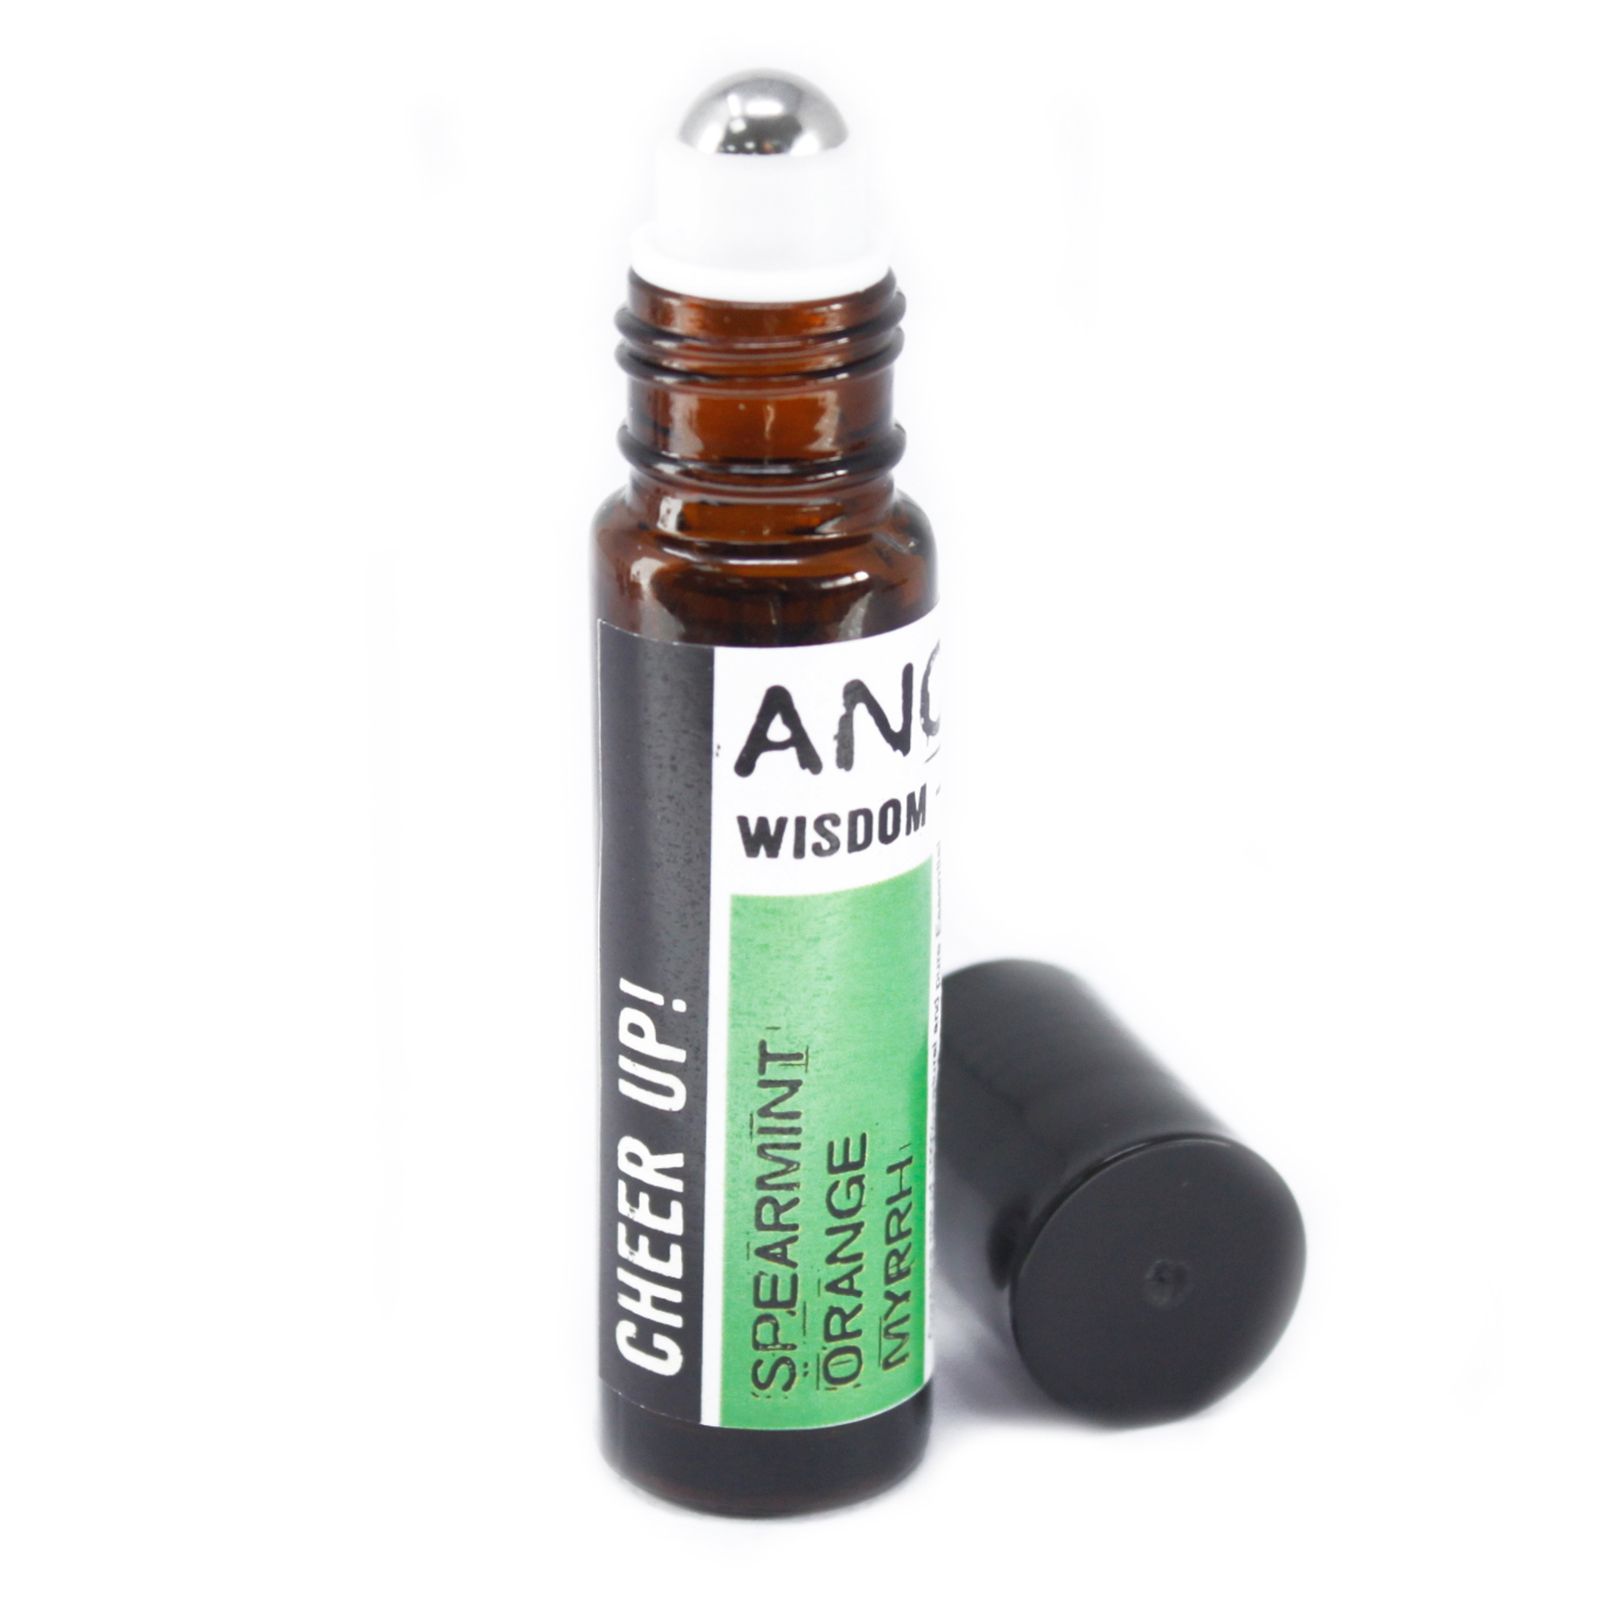 10ml Roll On Essential Oil Blend - Cheer Up!